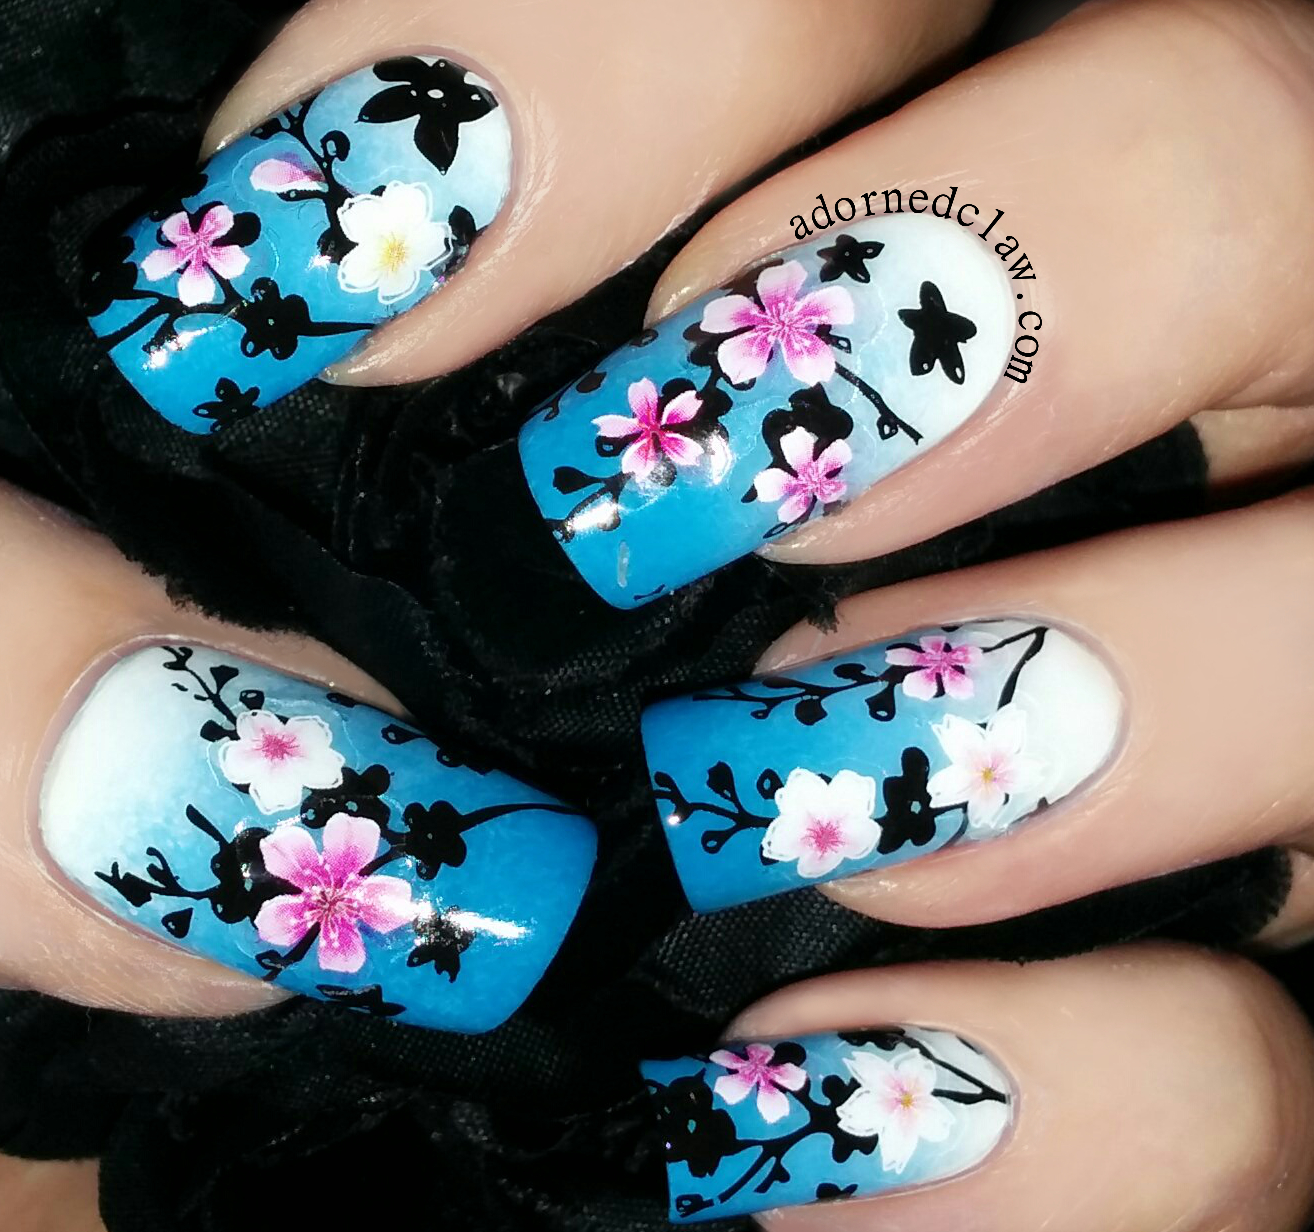 Magico Blossom Nail Stickers Review | The Adorned Claw